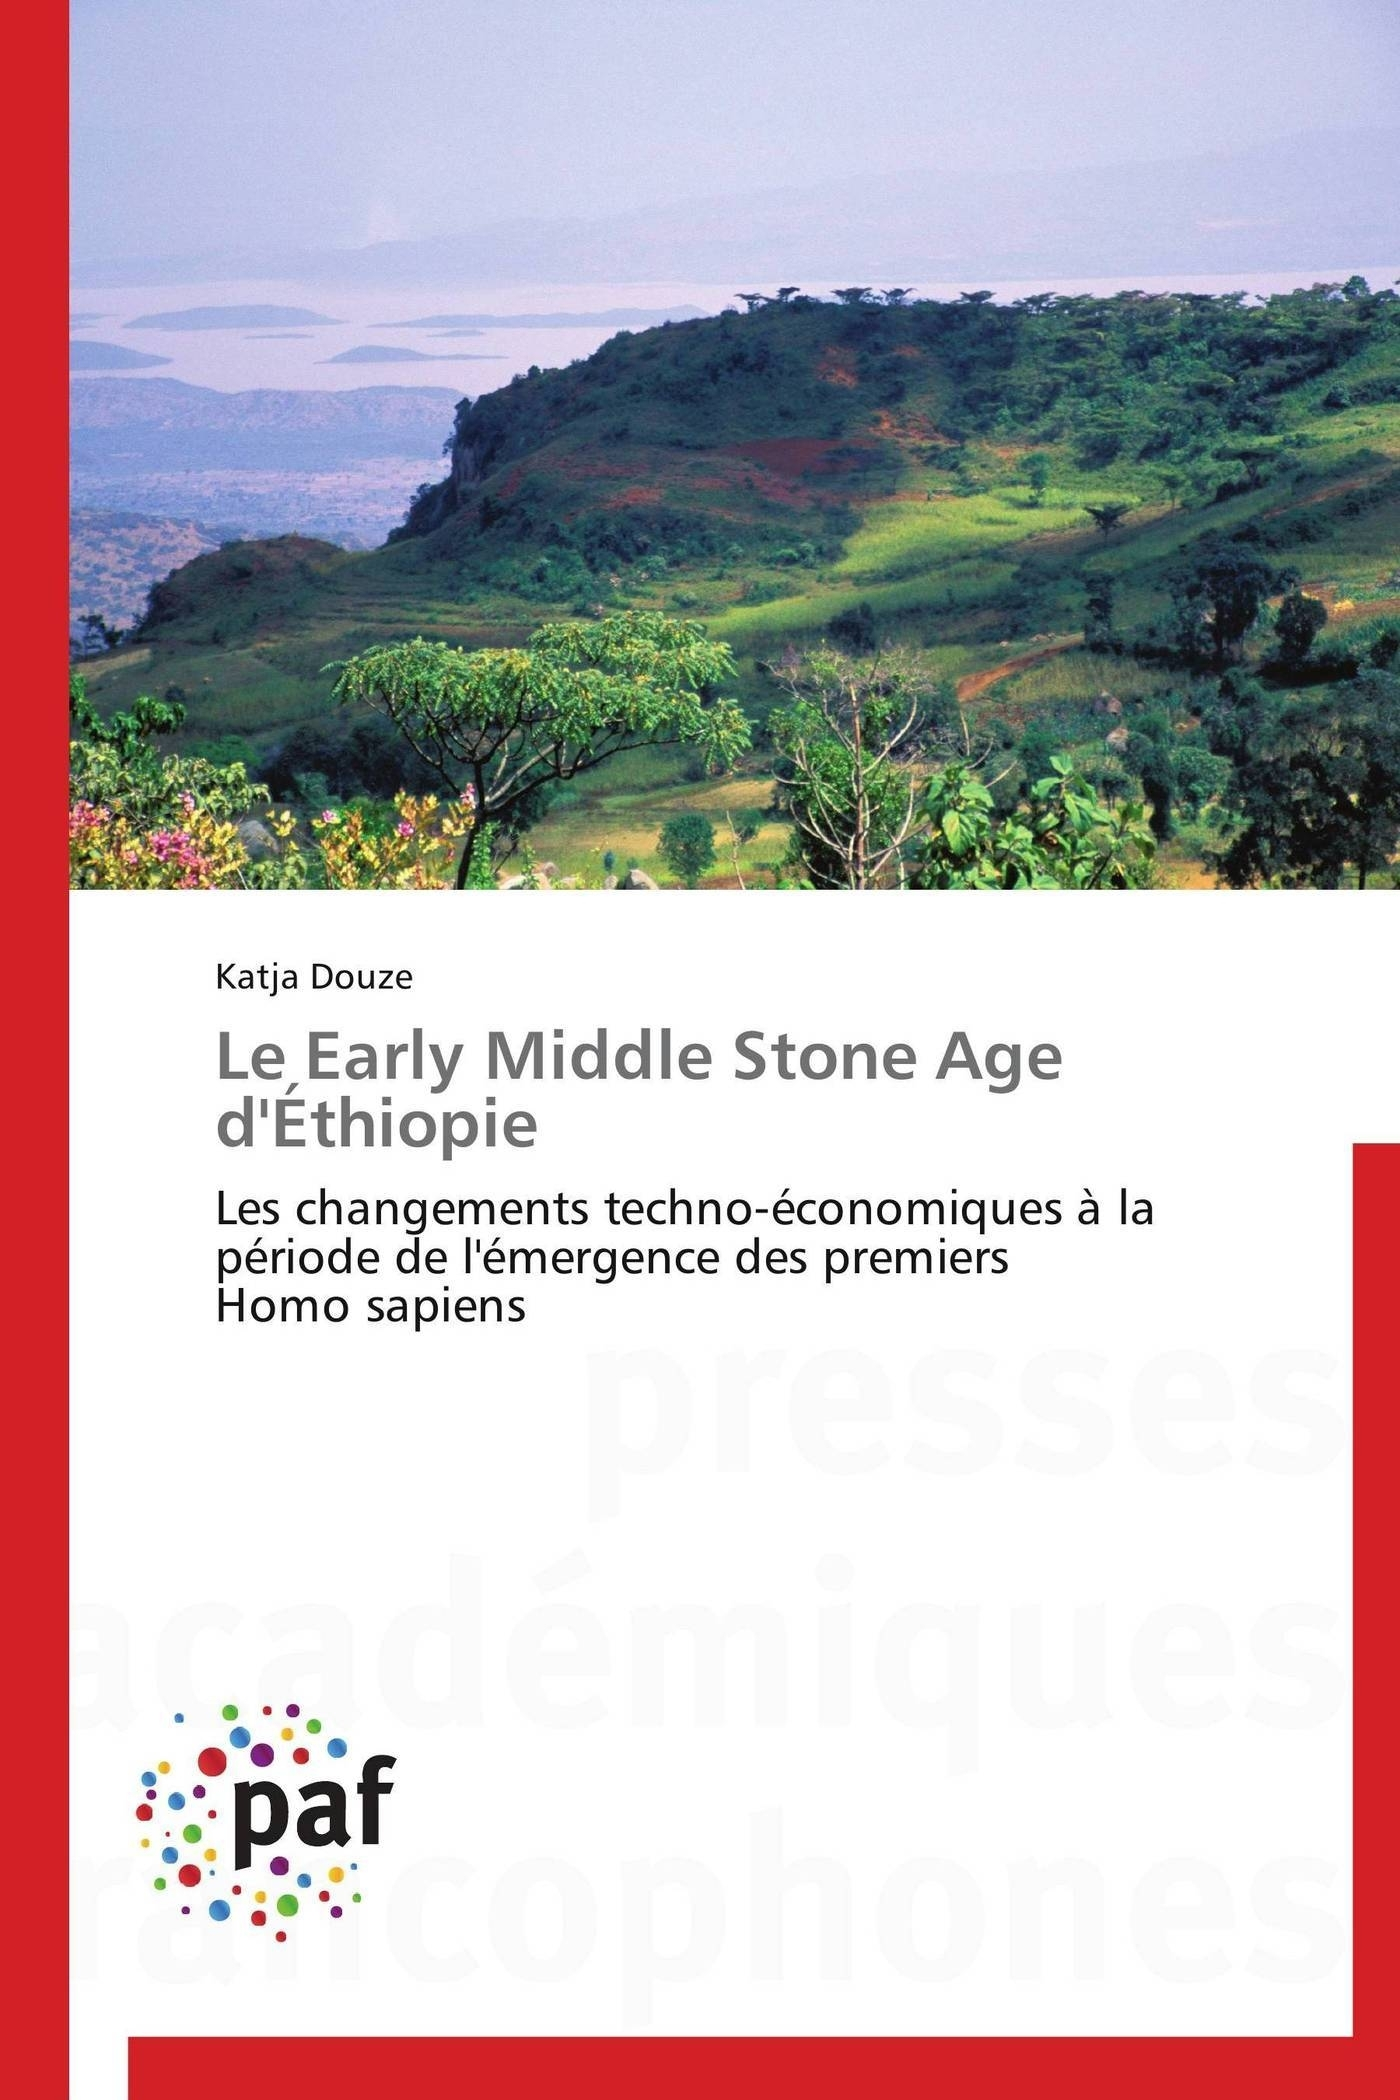 LE EARLY MIDDLE STONE AGE D'ETHIOPIE